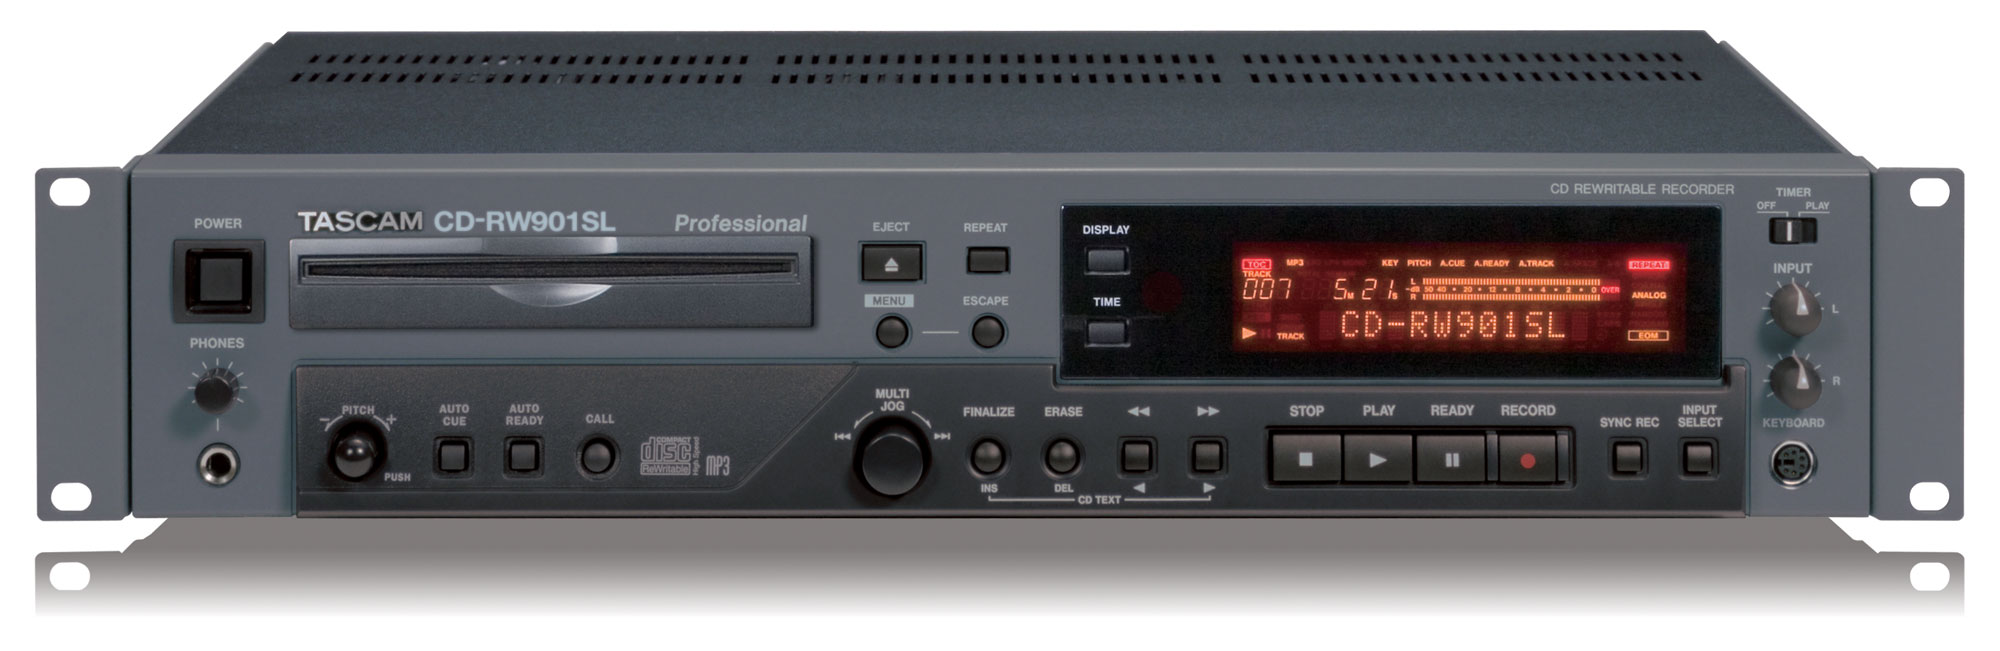 TASCAM CD – RW 901 MkII